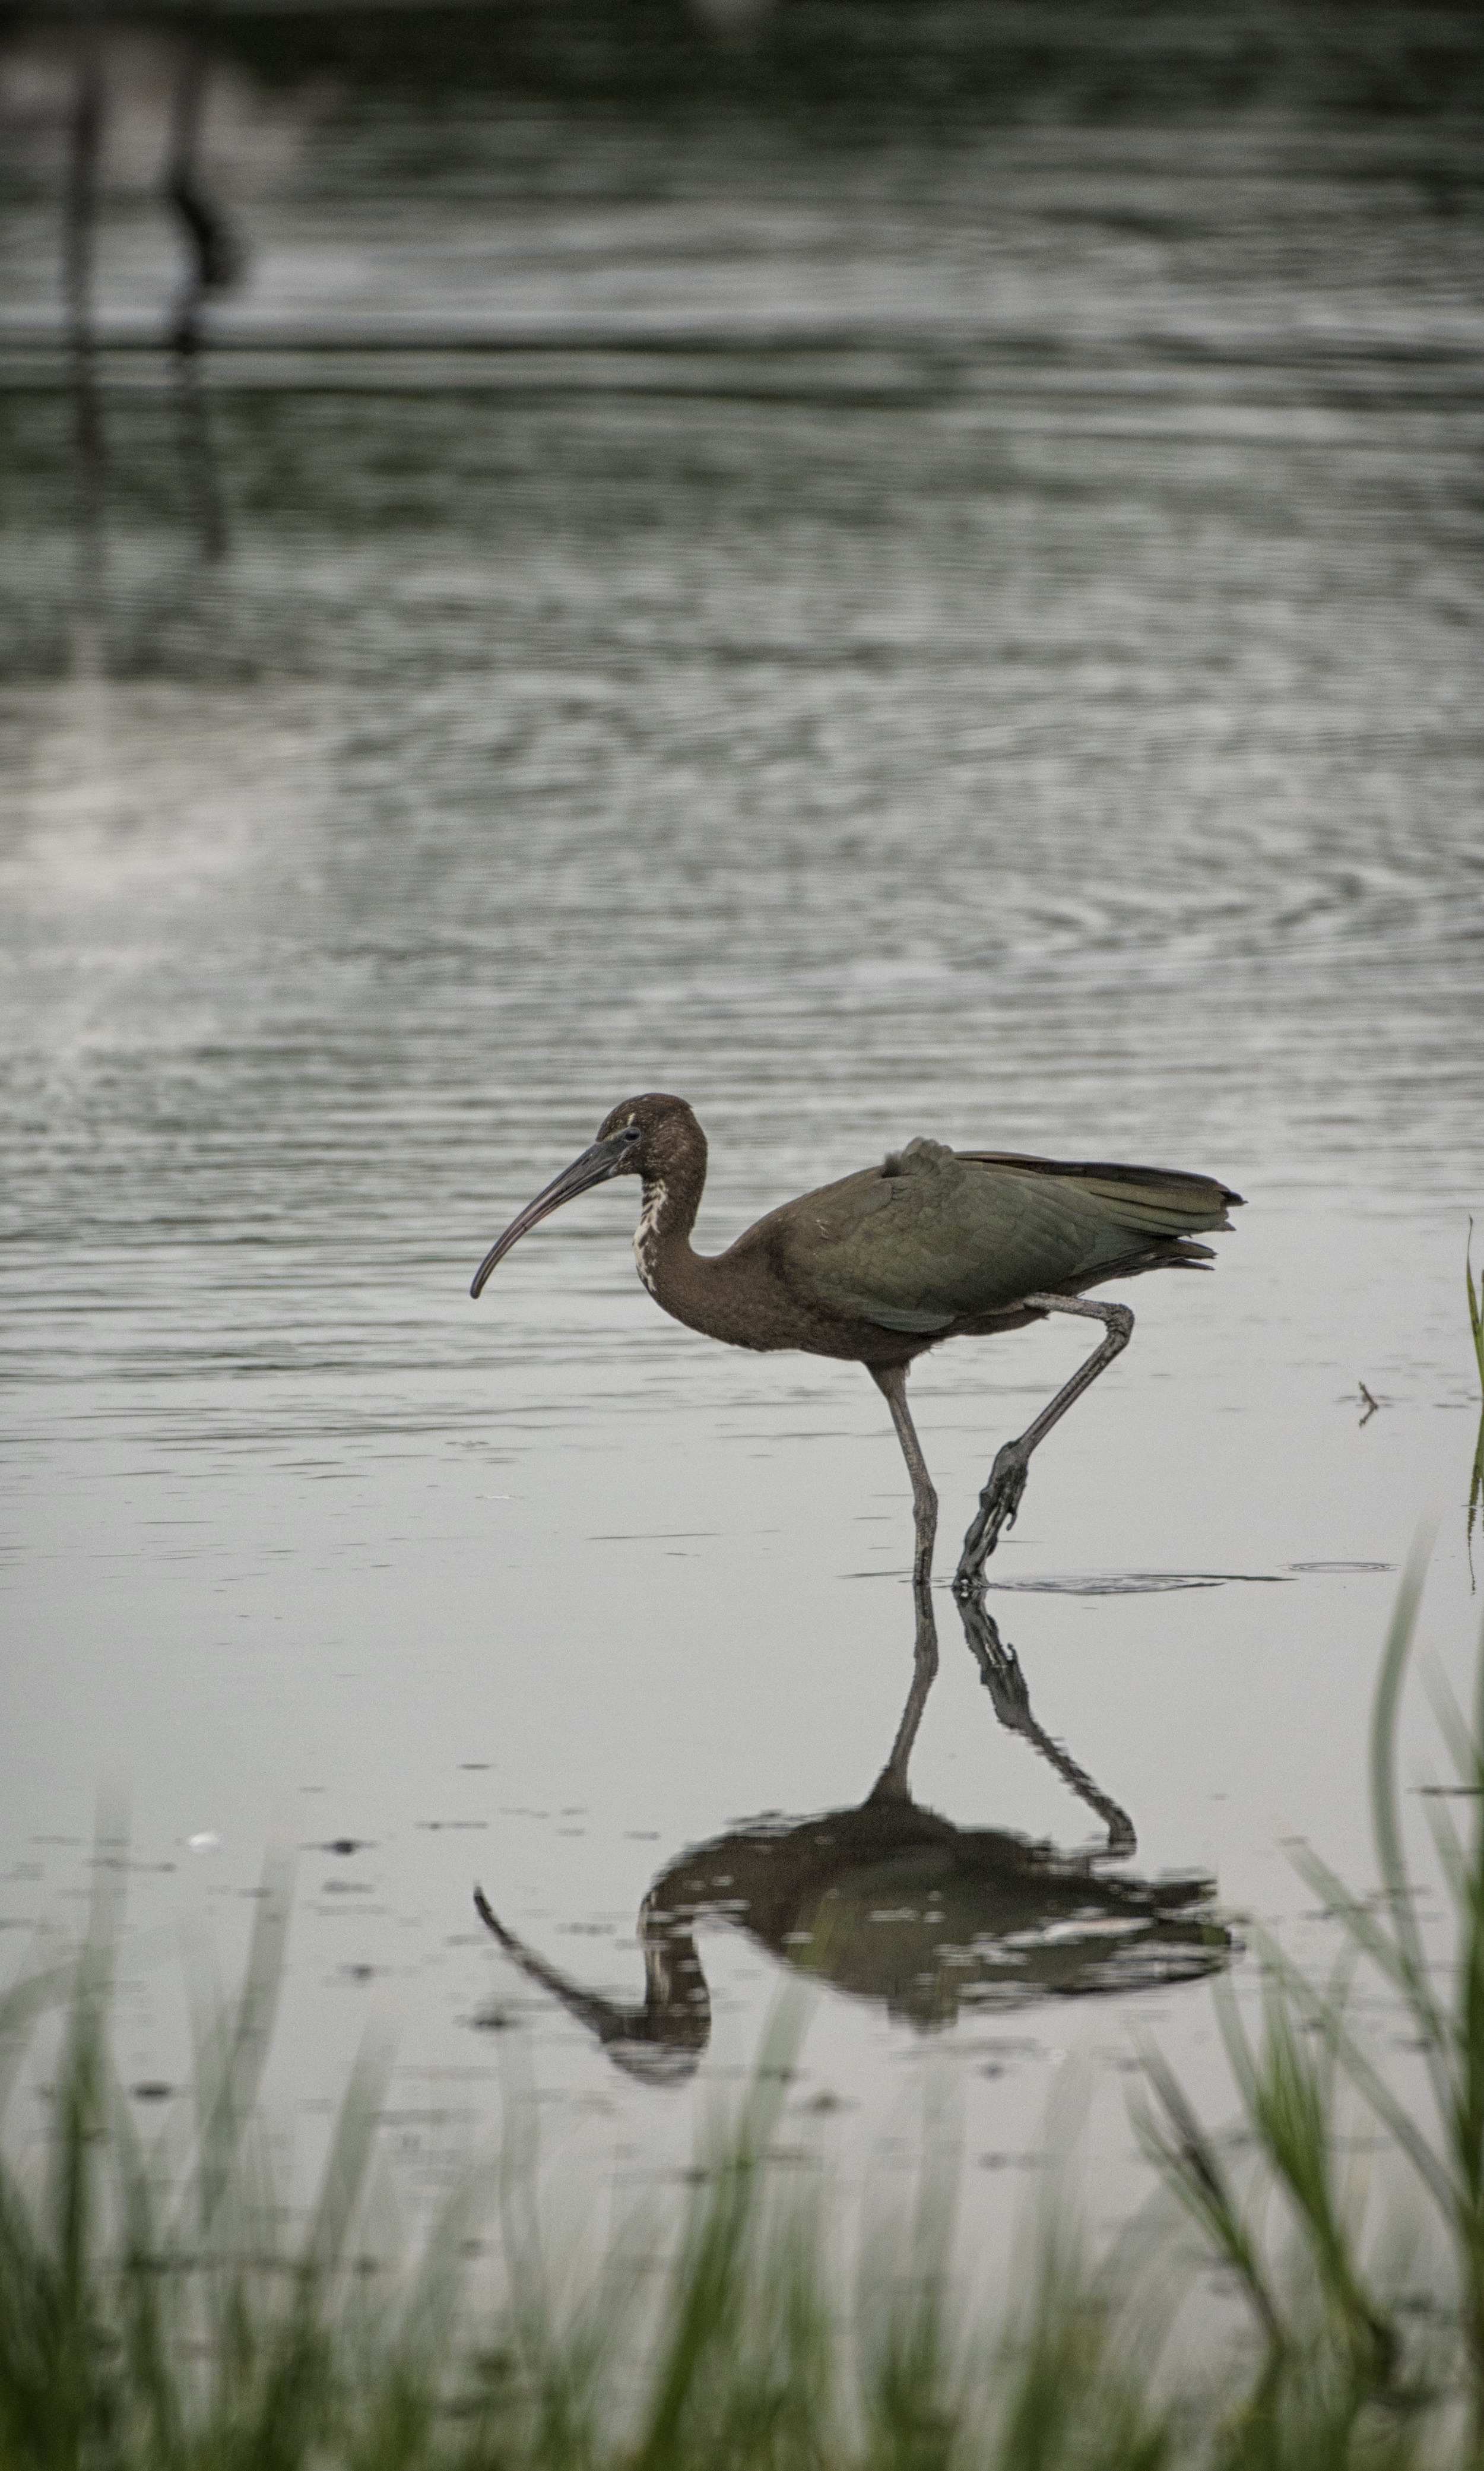 White Ibis at Bombay Hook NWR